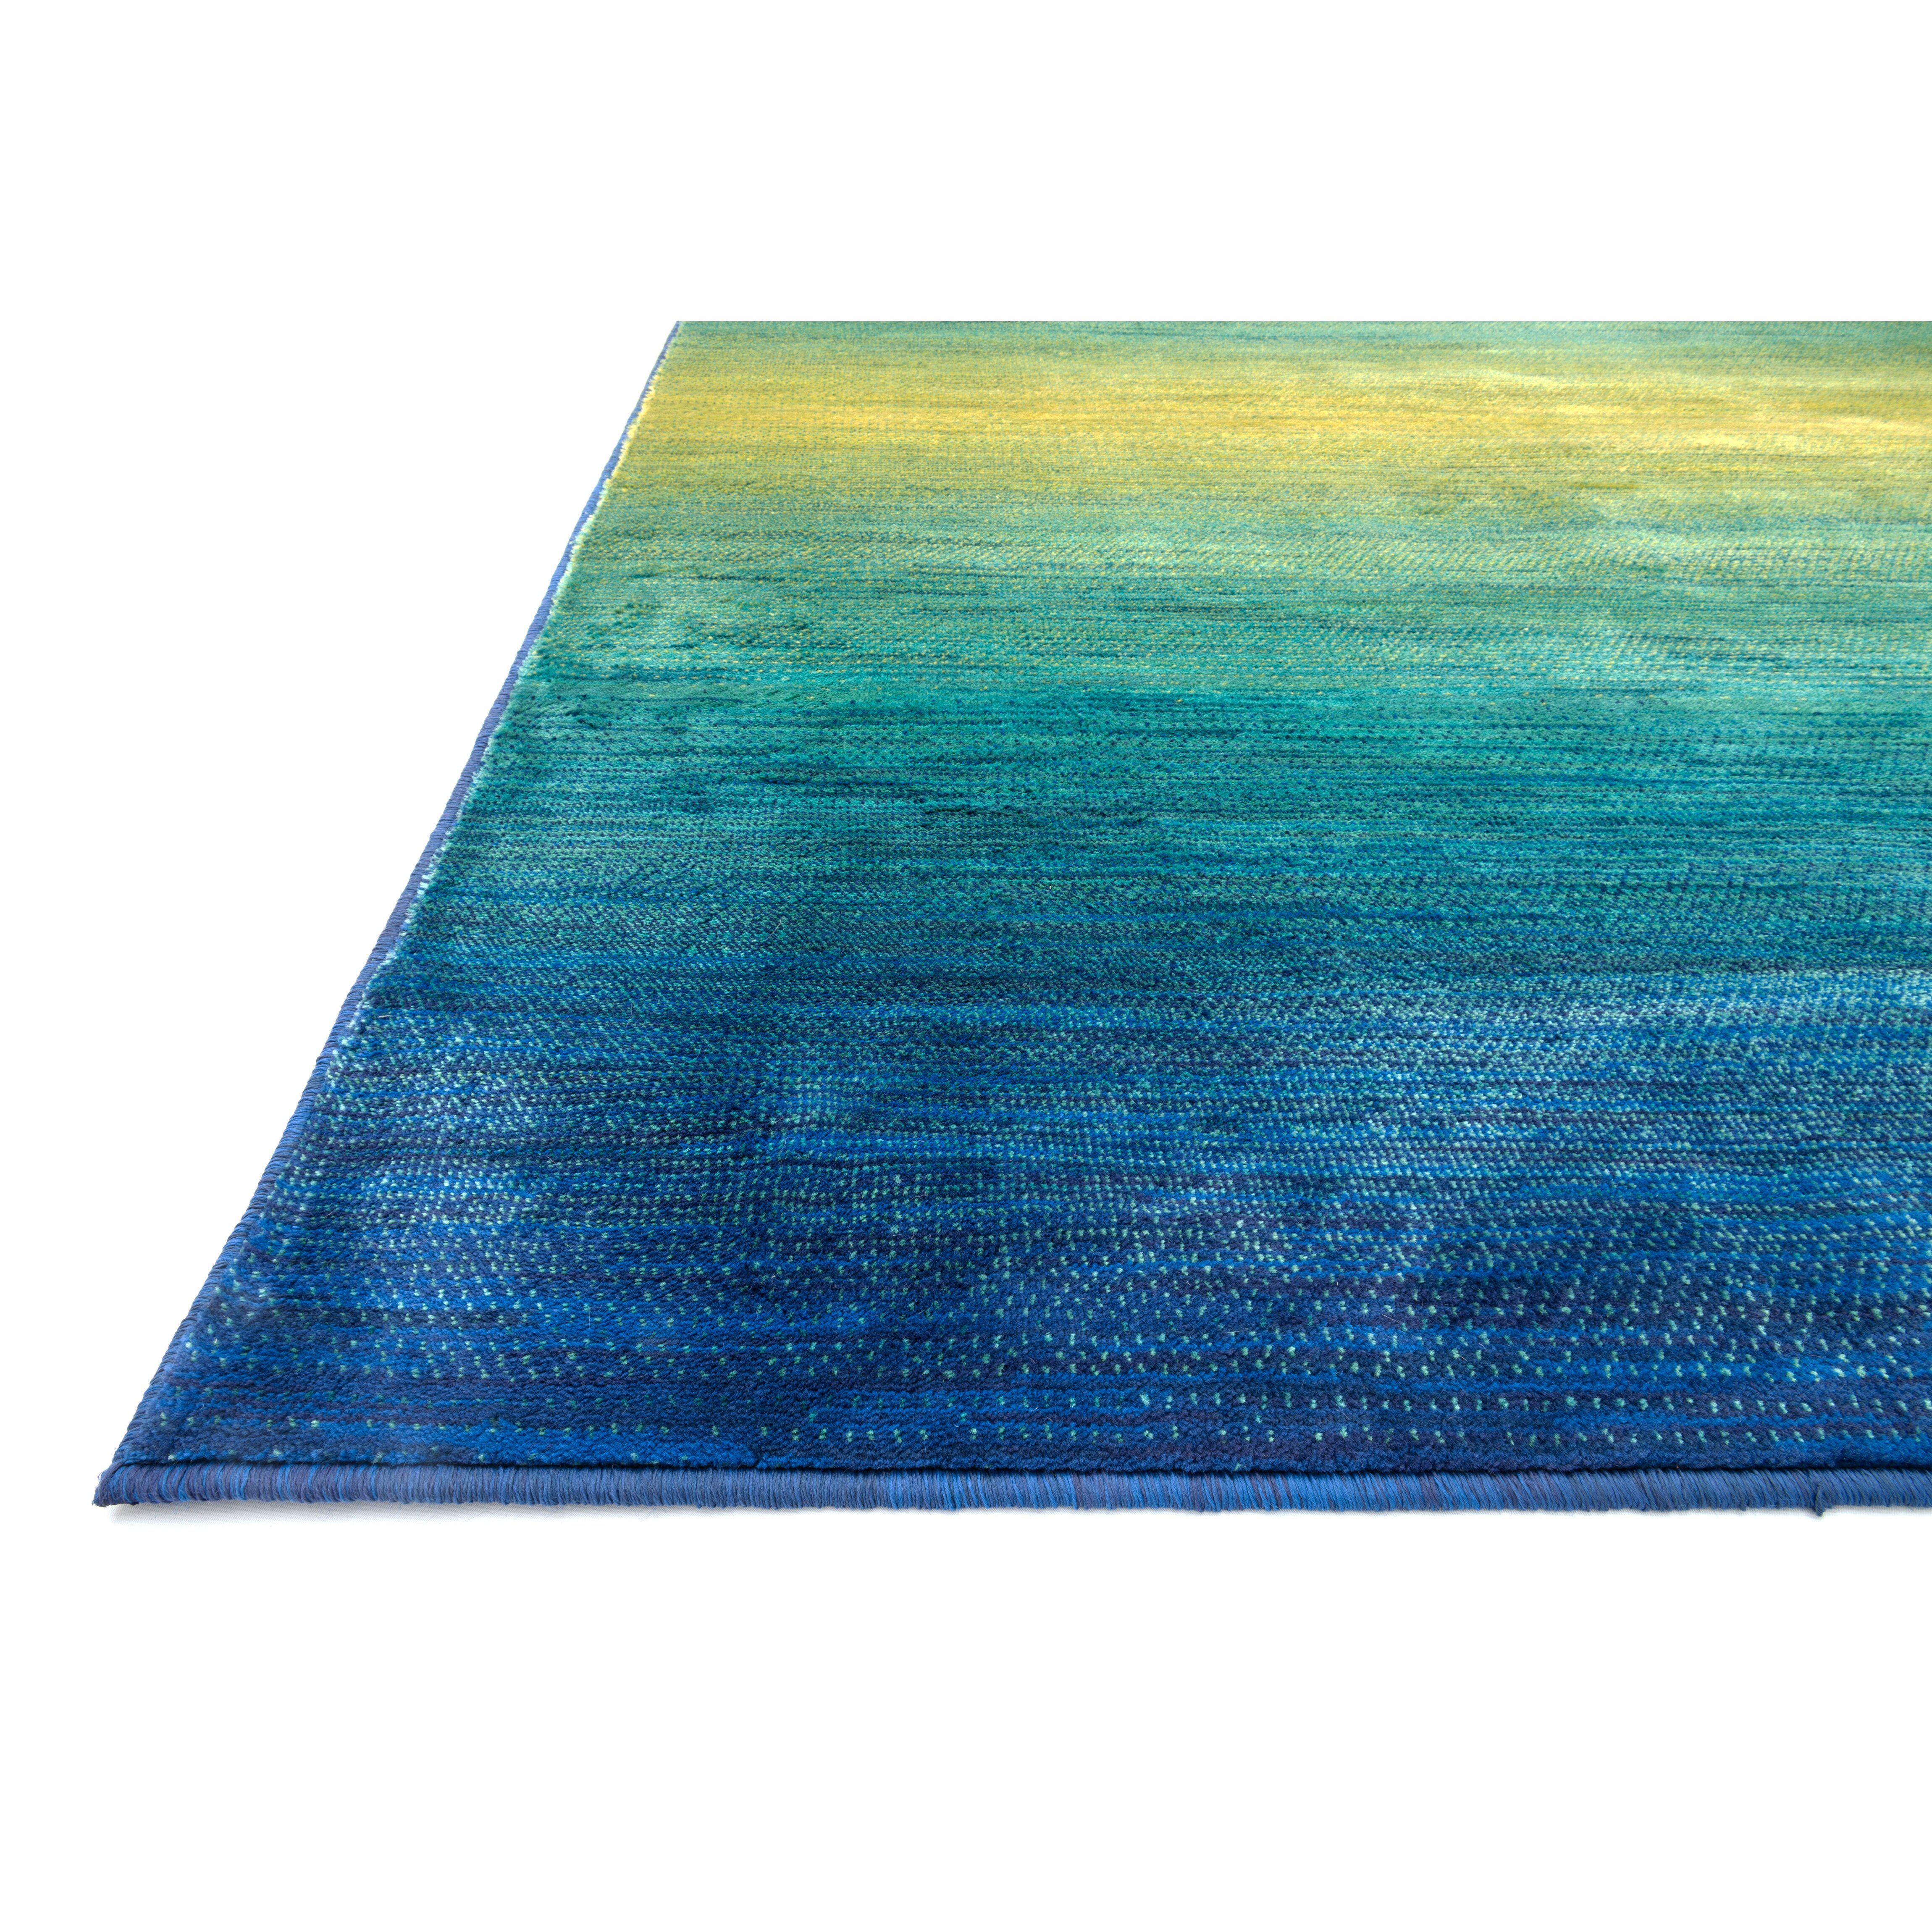 The Conestoga Trading Co. Blue/Teal Area Rug & Reviews